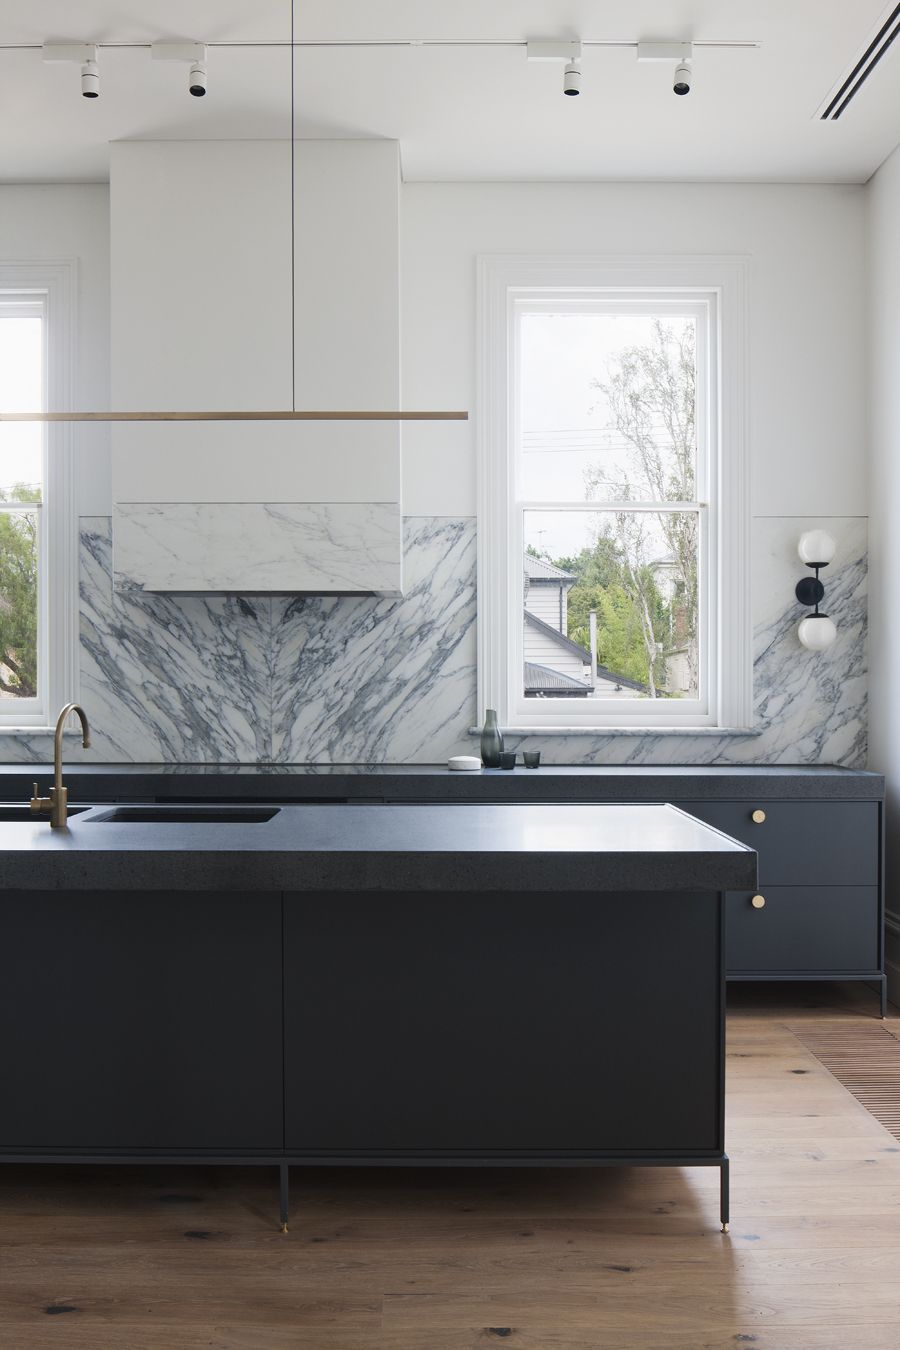 Dramatic Kitchen Range Hoods That Completely Steal The Show ... on artsy kitchen ideas, fabulous kitchen ideas, bold kitchen ideas, glamorous kitchen ideas, airy kitchen ideas, marble kitchen ideas, romantic kitchen ideas, futuristic kitchen ideas, dark kitchen ideas, elegant kitchen ideas, funky kitchen ideas, spacious kitchen ideas, colorful kitchen ideas, luxurious kitchen ideas, inspiring kitchen ideas,